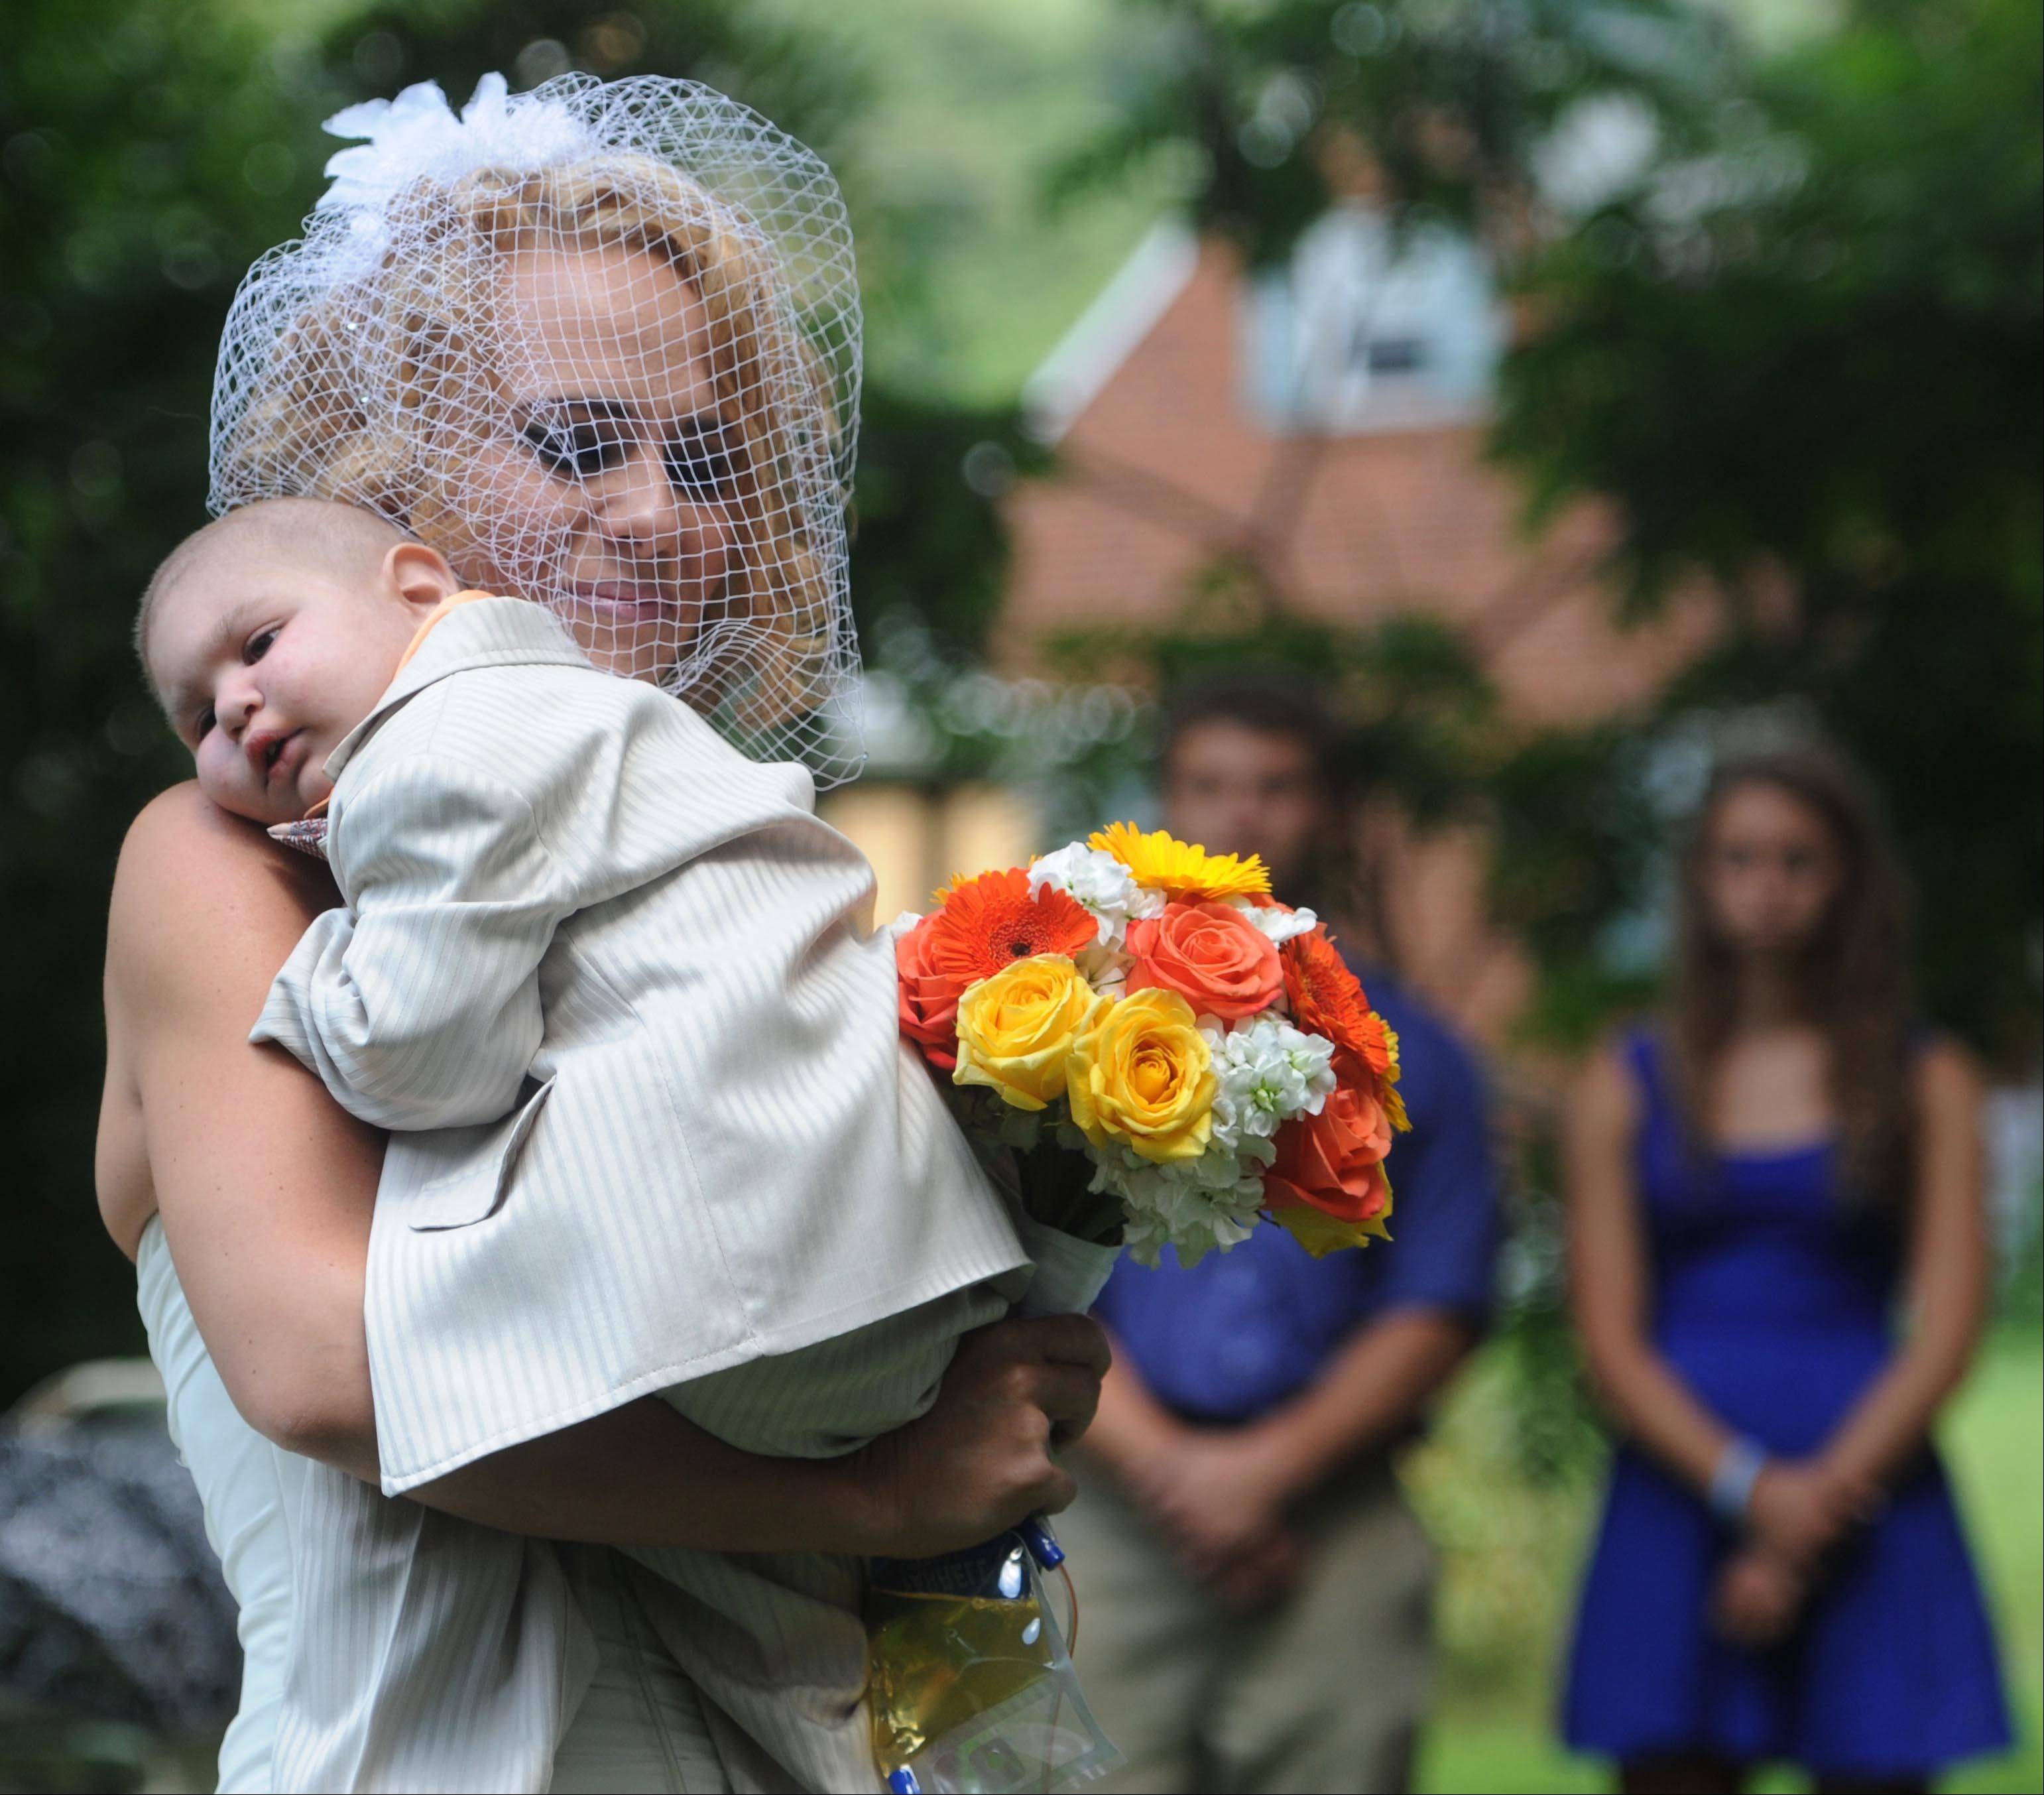 Christine Swidorsky carries her son, the couple's best man, Logan Stevenson, 2, down the aisle to her husband-to-be Sean Stevenson during the wedding ceremony on Saturday in Jeannette, Pa.